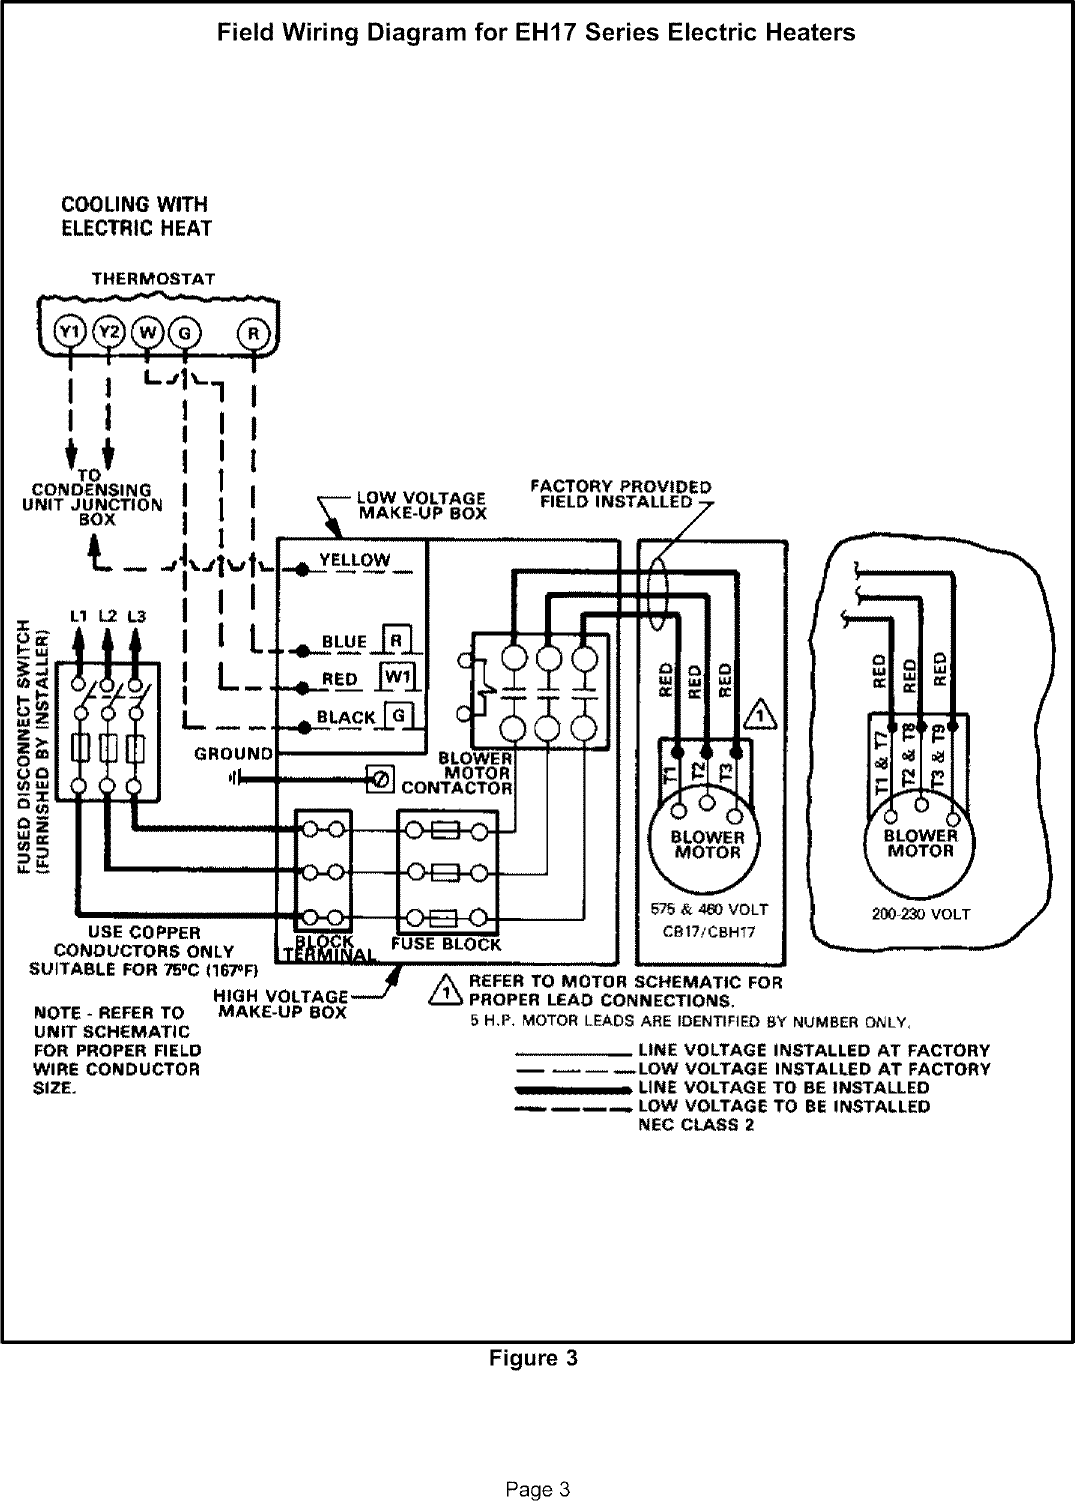 Lennox Air Handler Auxiliary Heater Kit Manual L0805586 Electric Heat Wiring Diagrams Page 3 Of